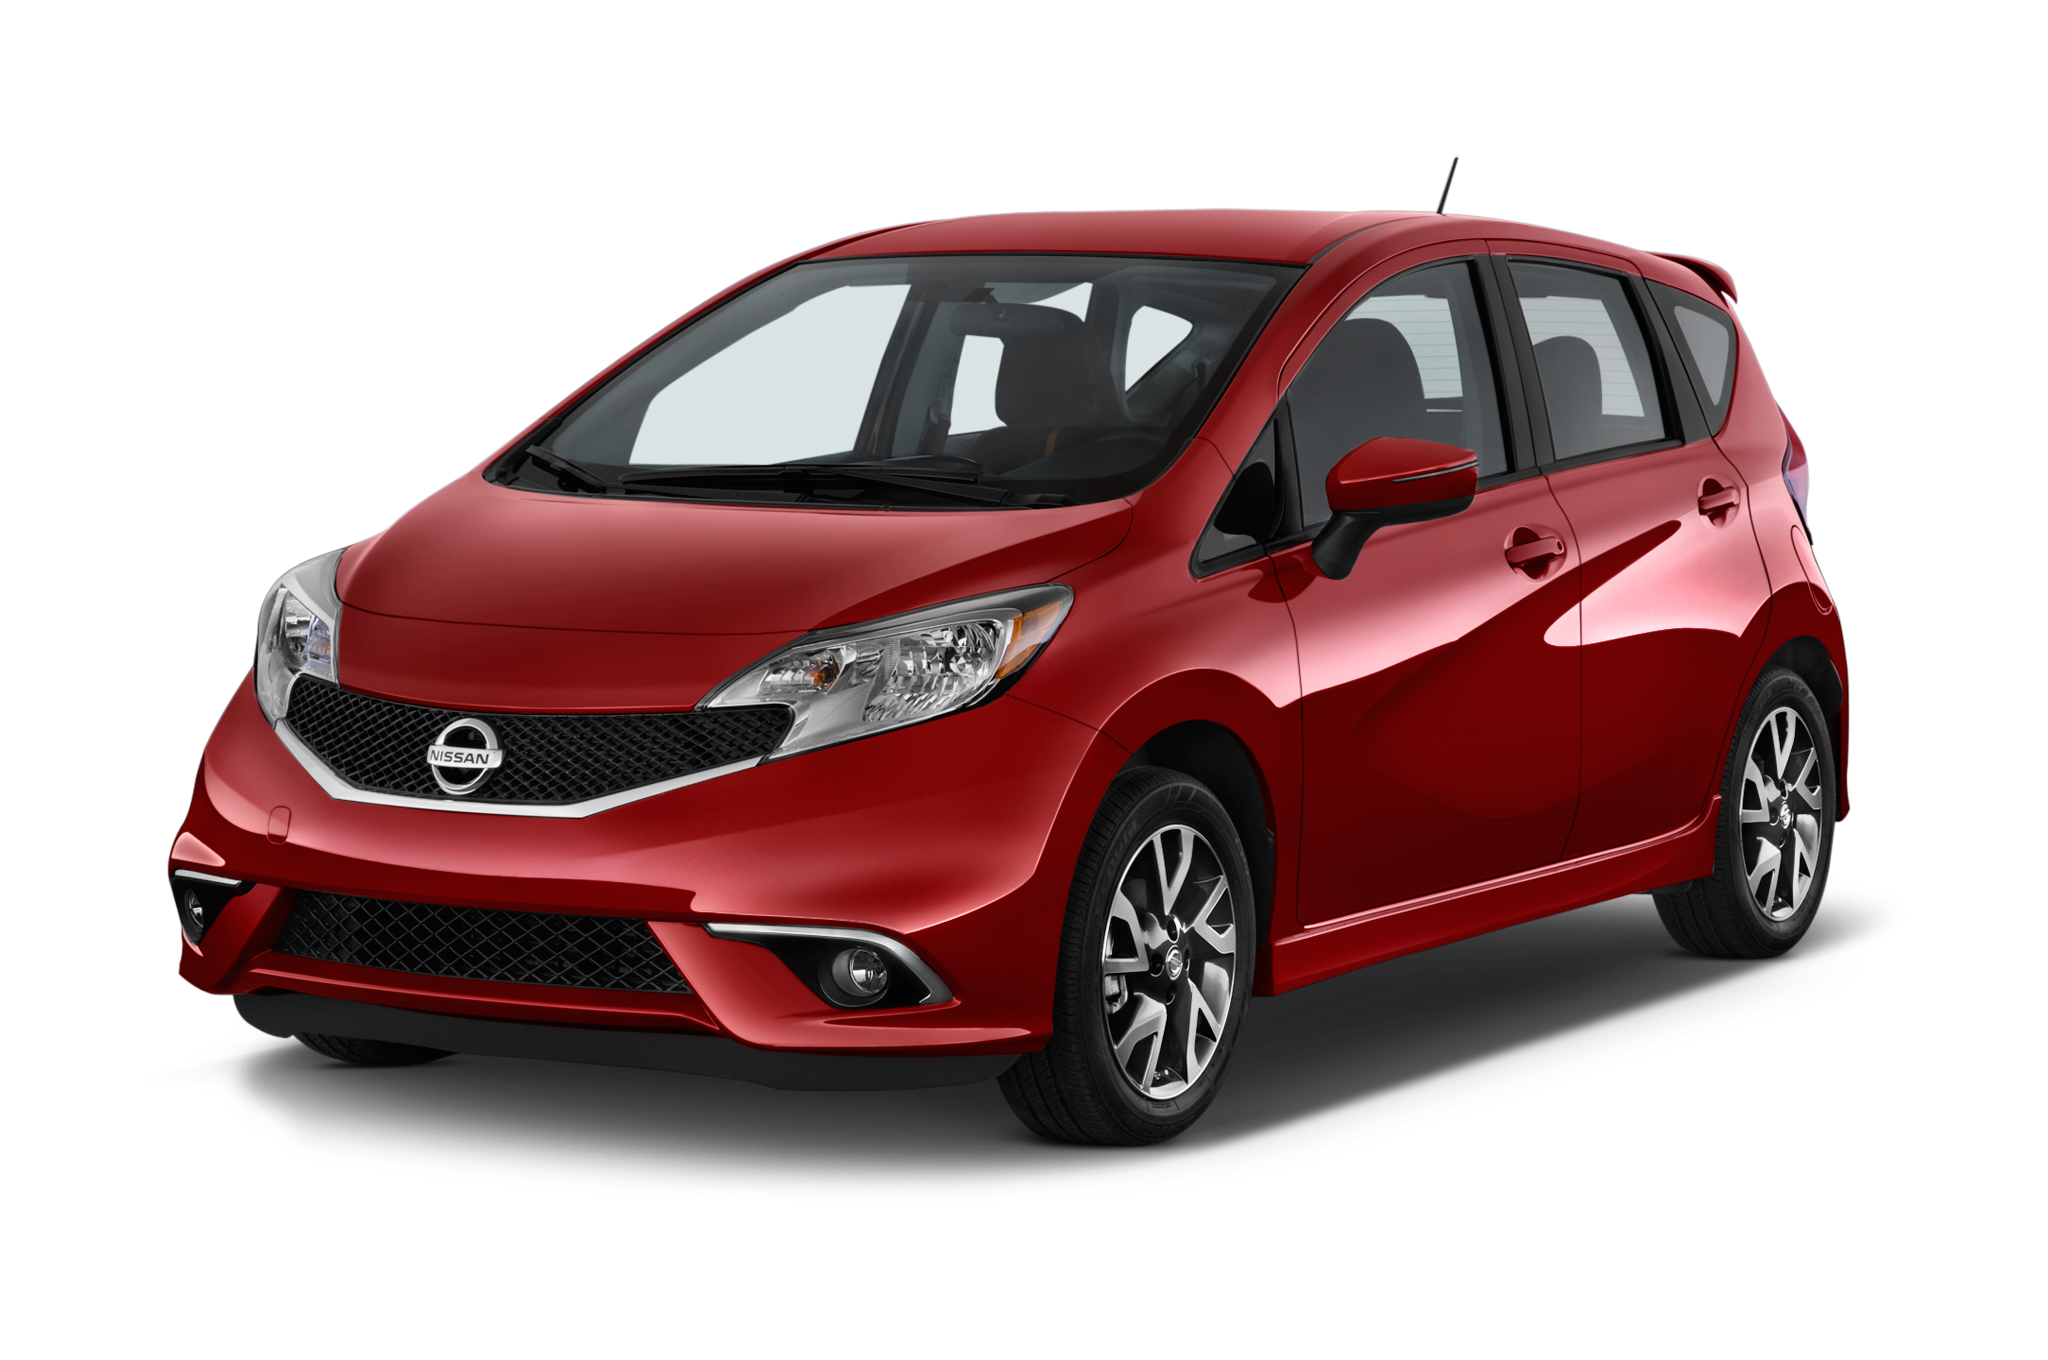 vs versa fit article sr hatchback amazingly your honda interior car nissan comparison significant the is note one new of which